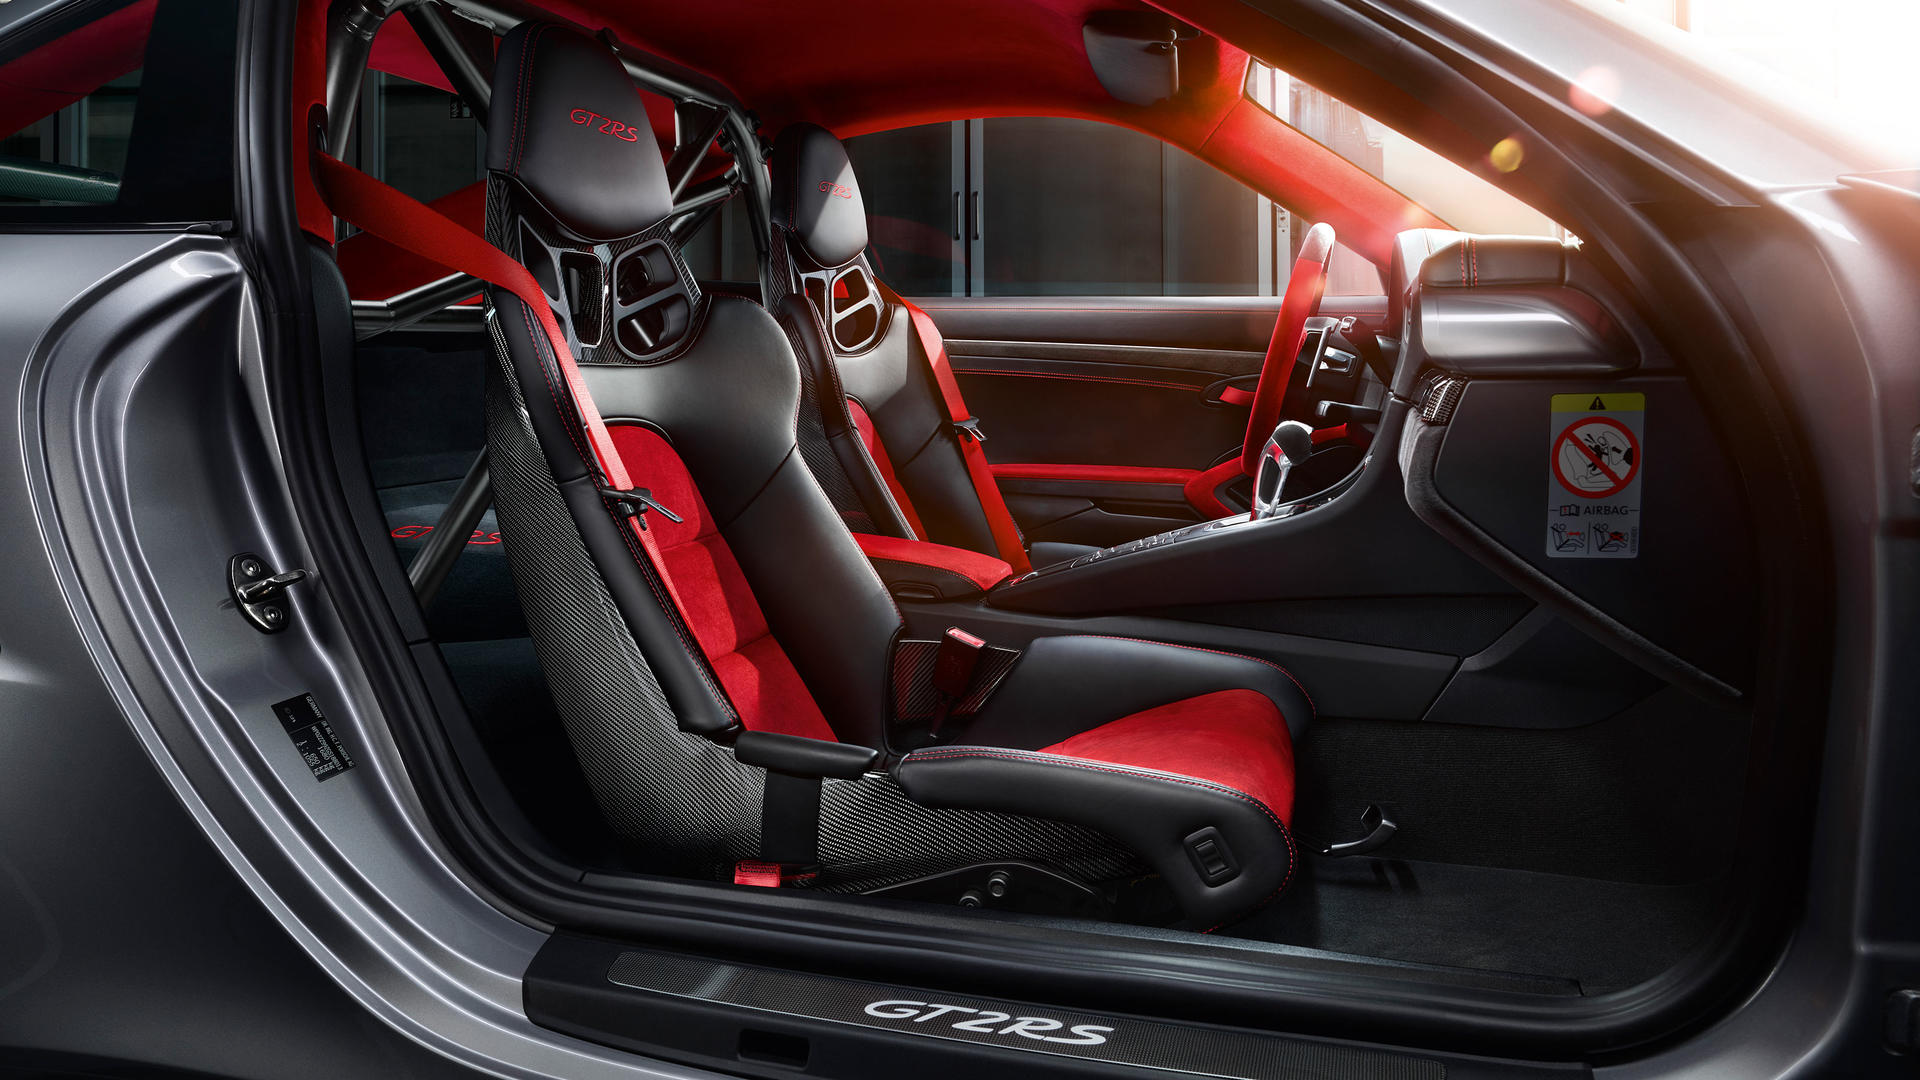 <p>There's stuff like rear-axle steering to help the car go quicker around corners along with torque vectoring that ensures all four wheels have optimum traction and power.</p>